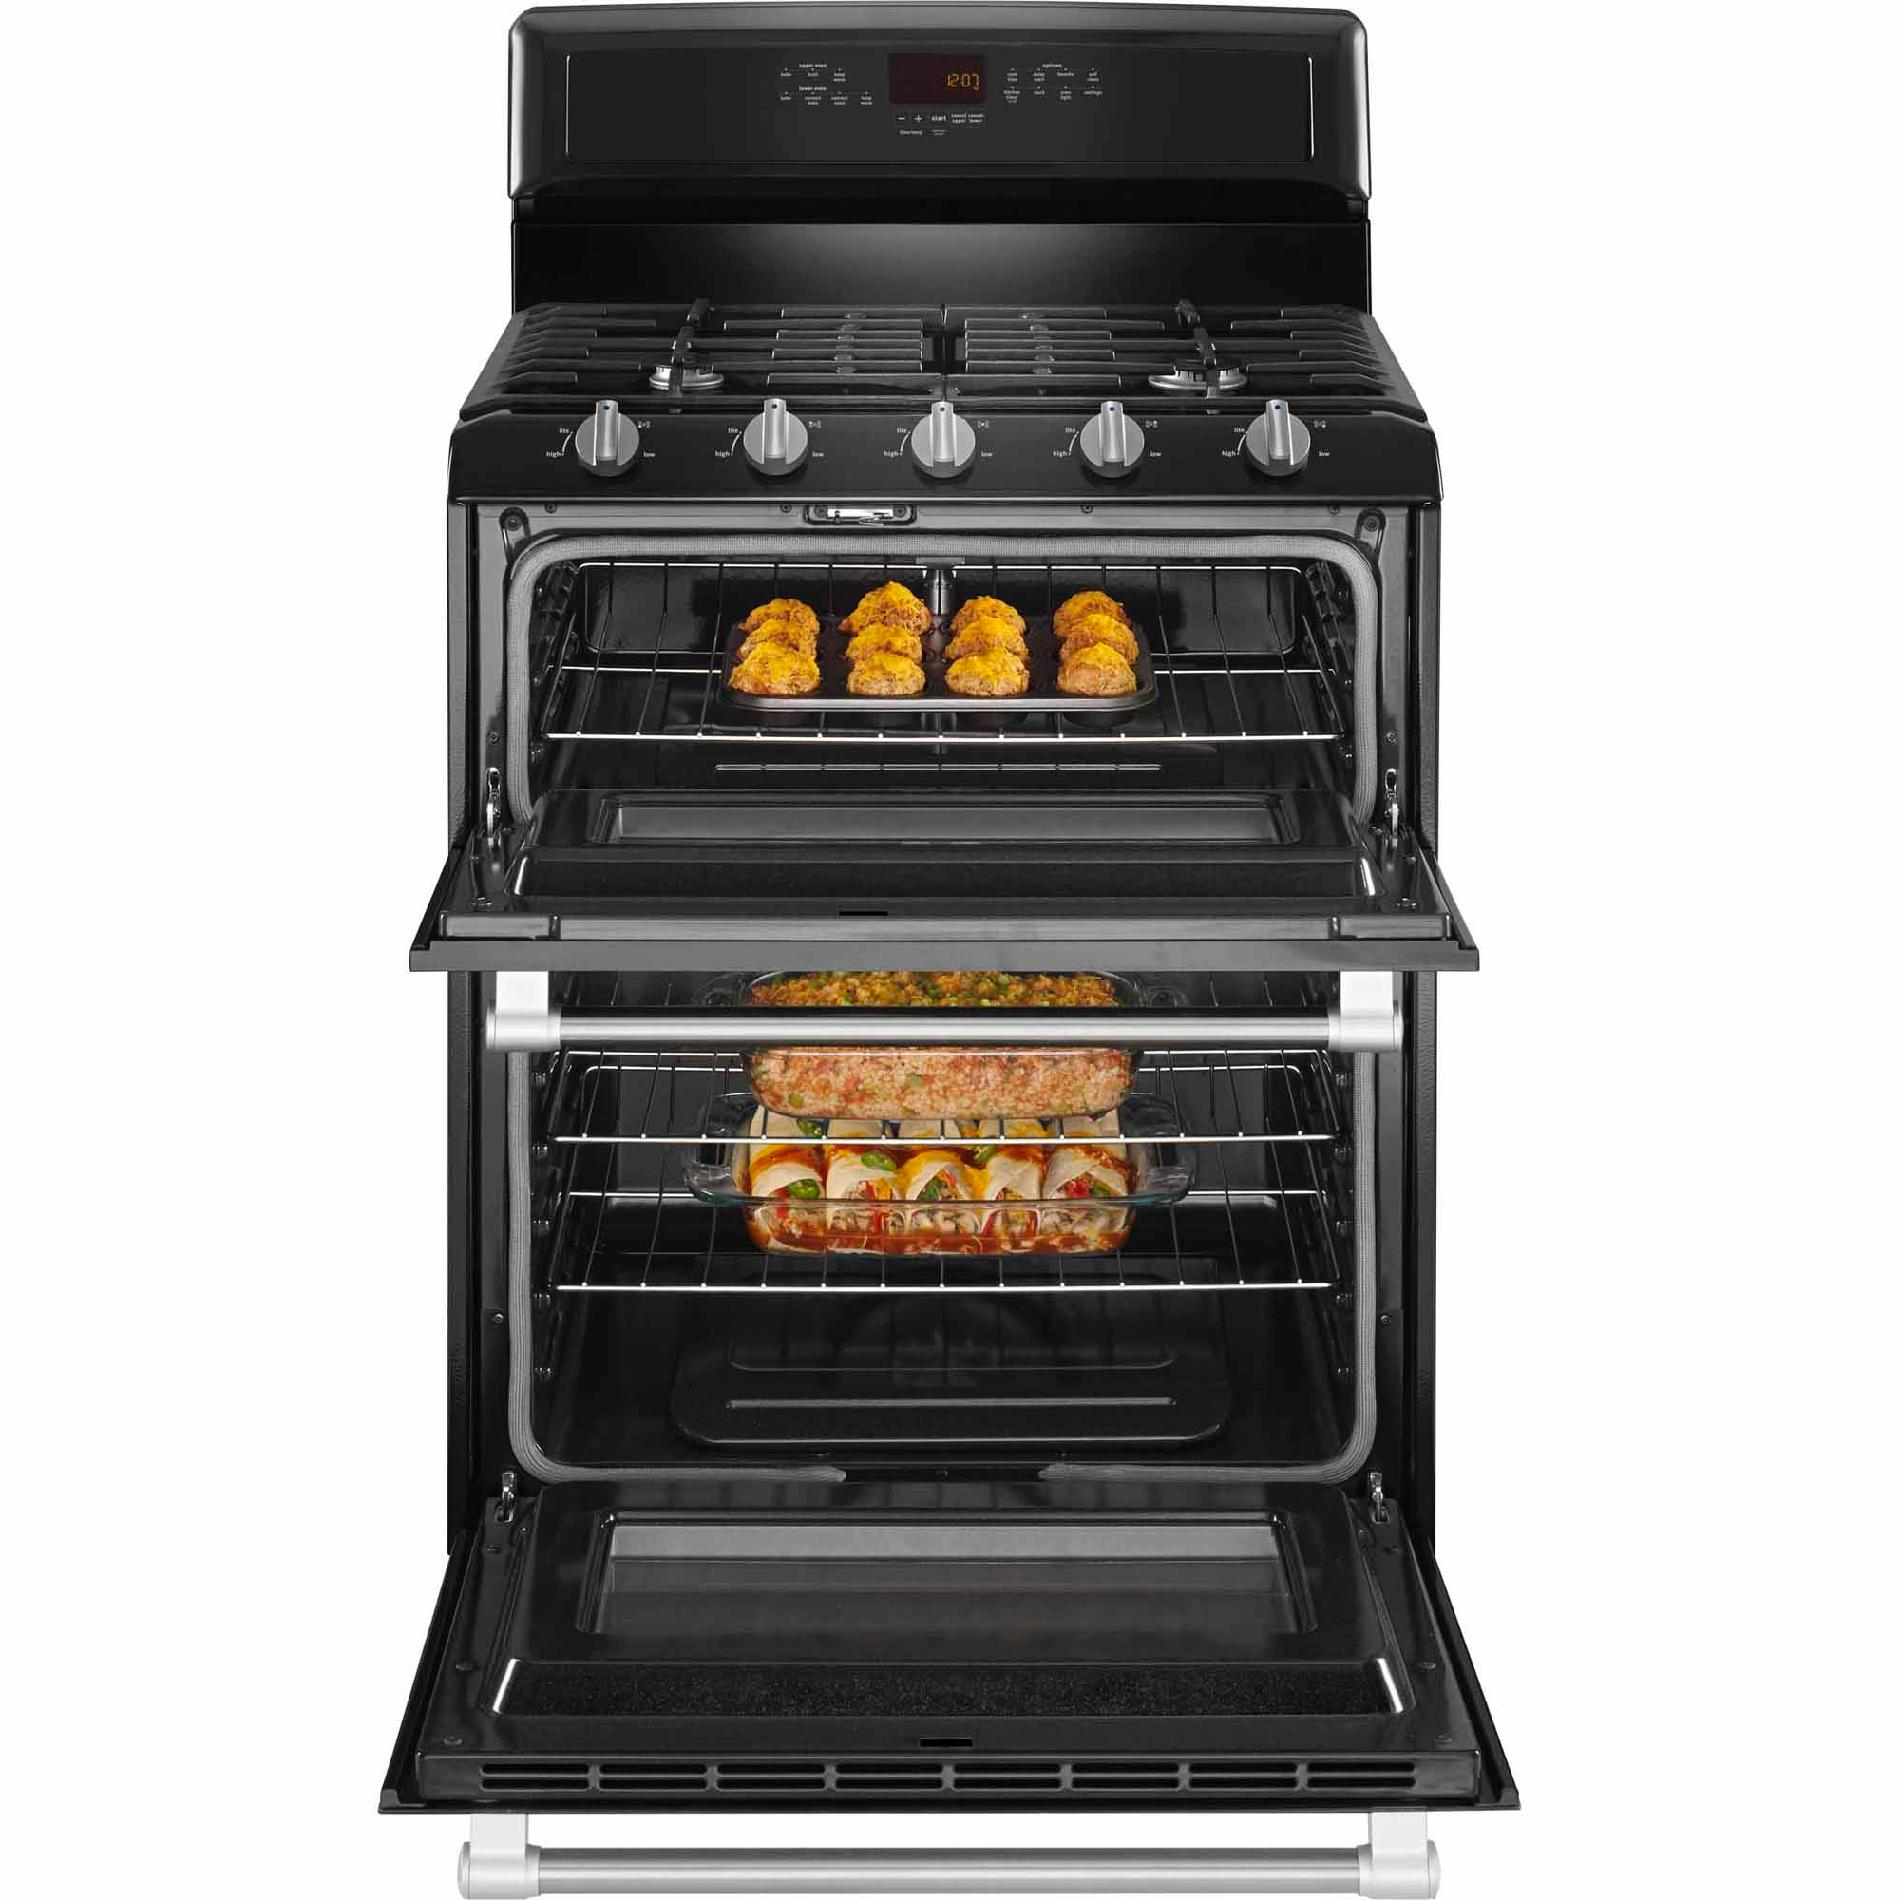 Maytag MGT8720DE 6.0 cu. ft. Double-Oven Gas Range - Black w/ Stainless Handle